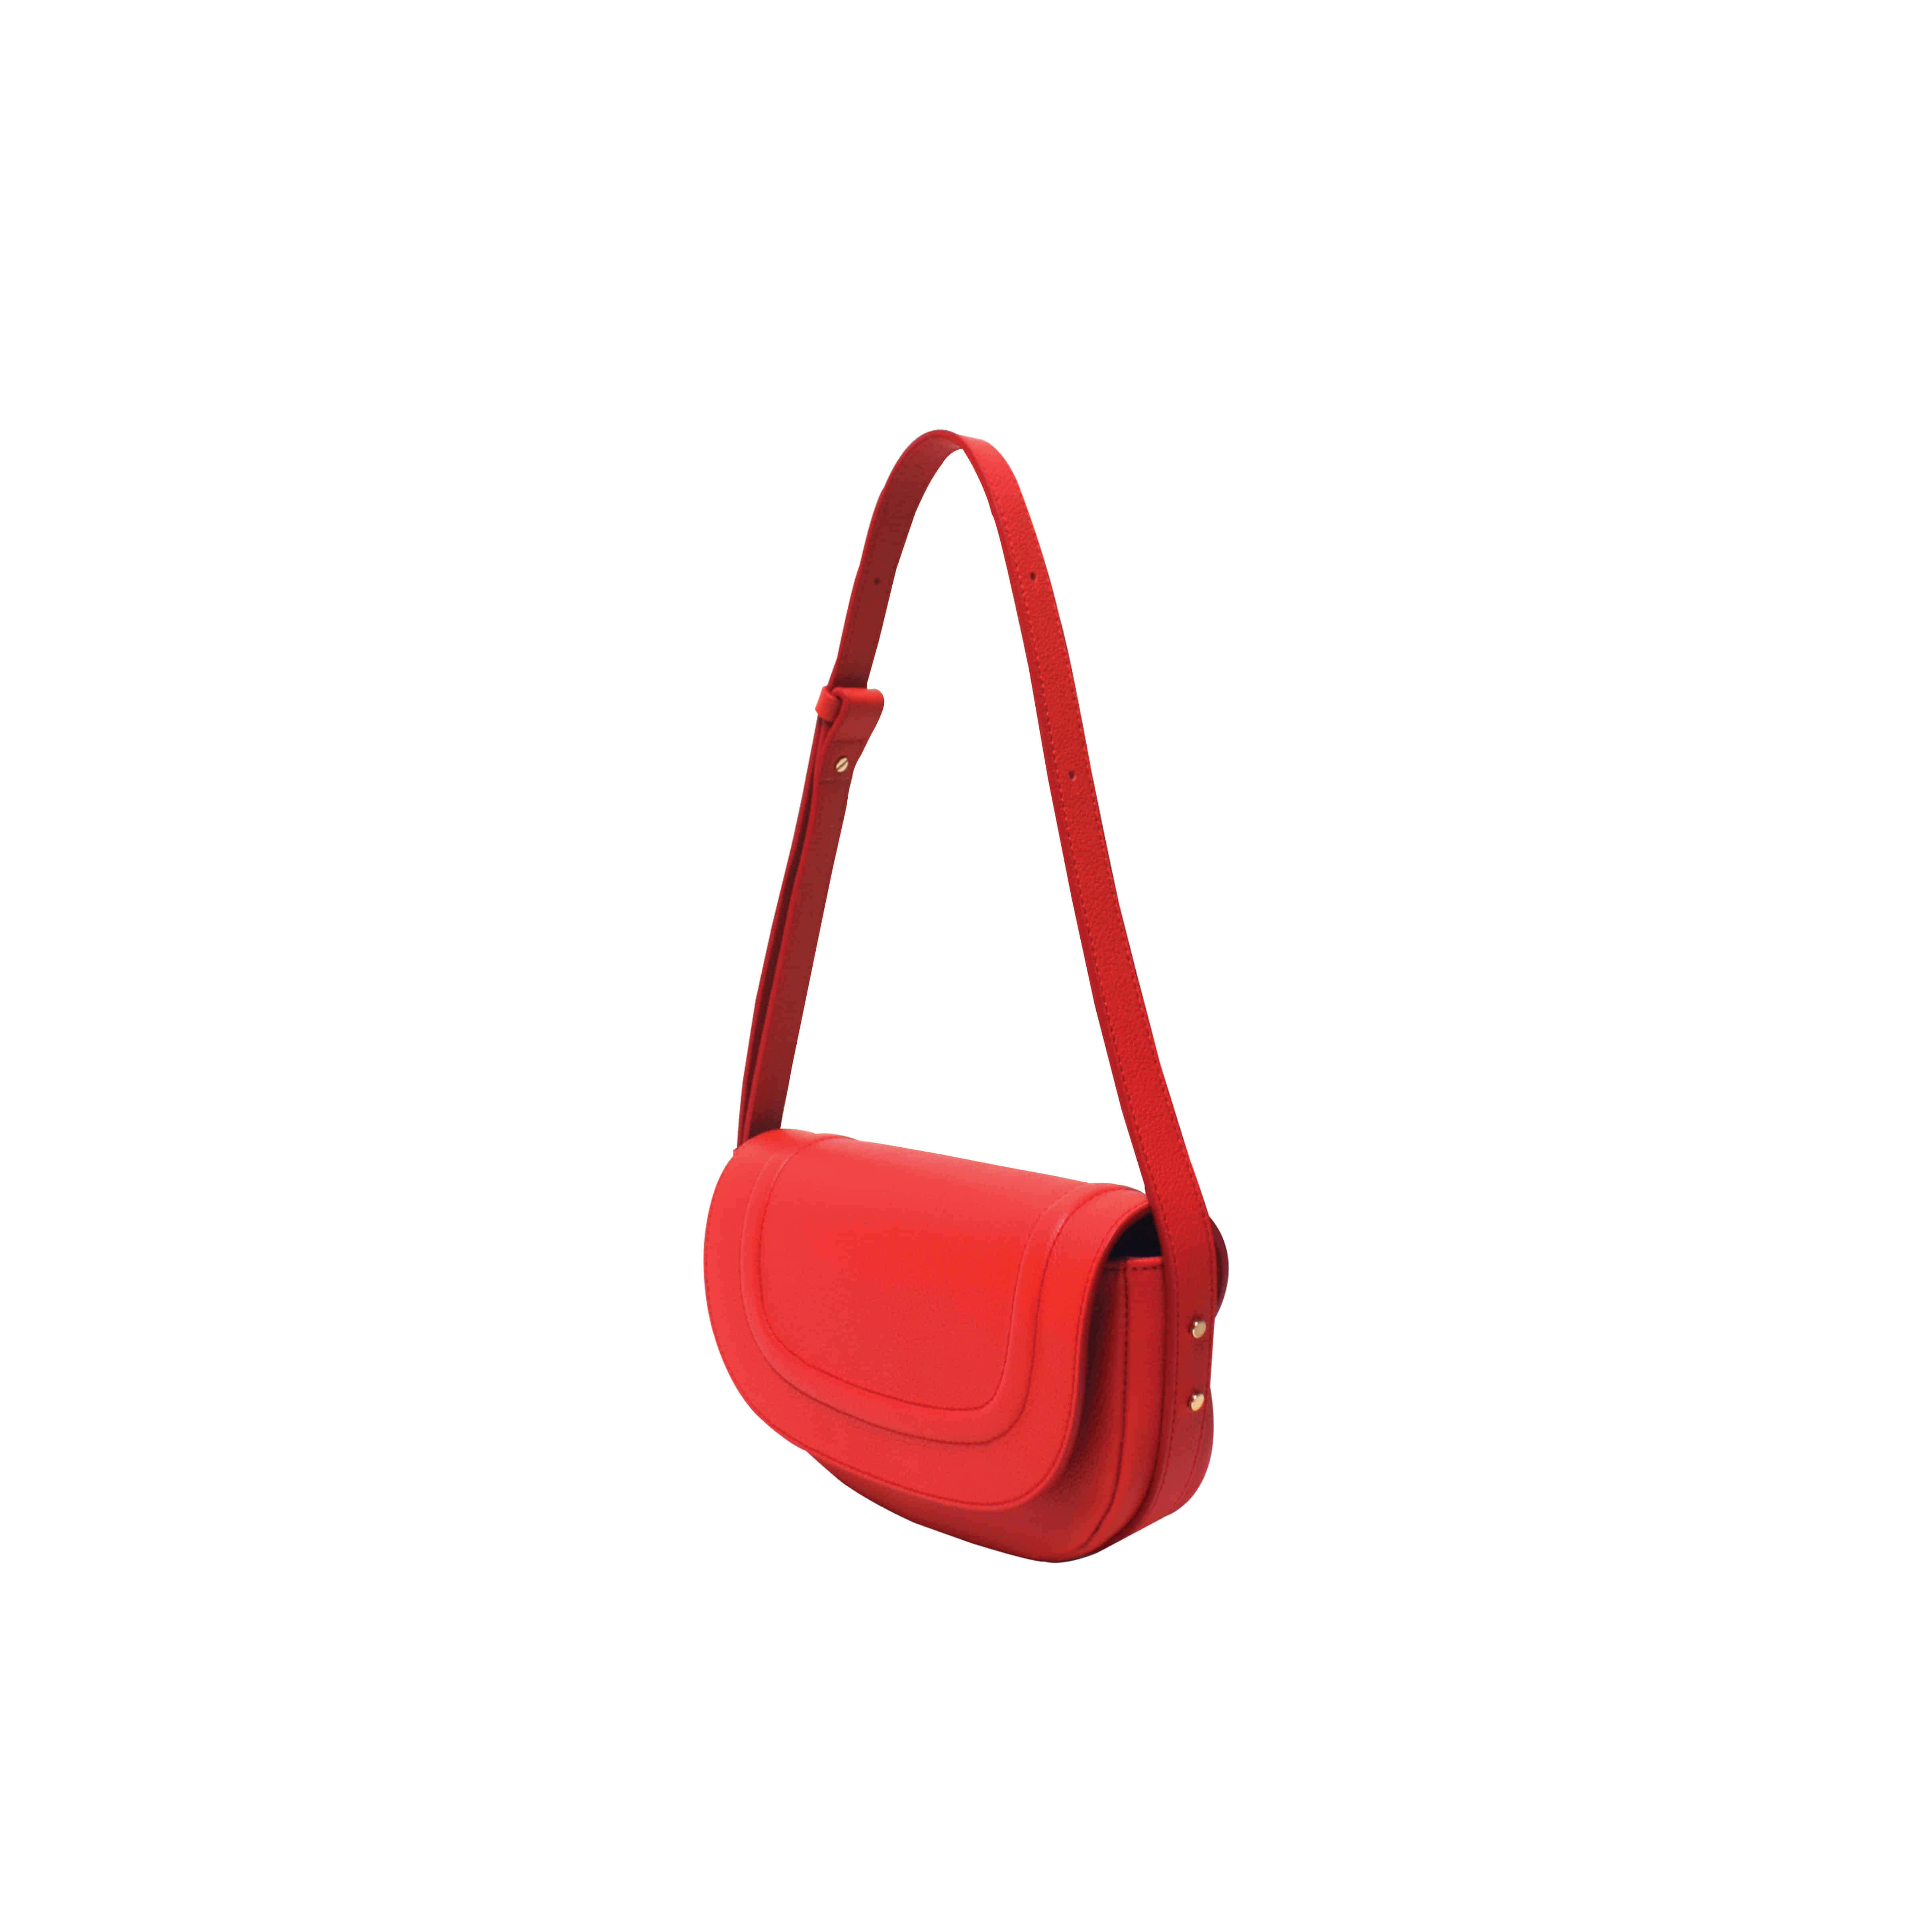 LONI small embo / red